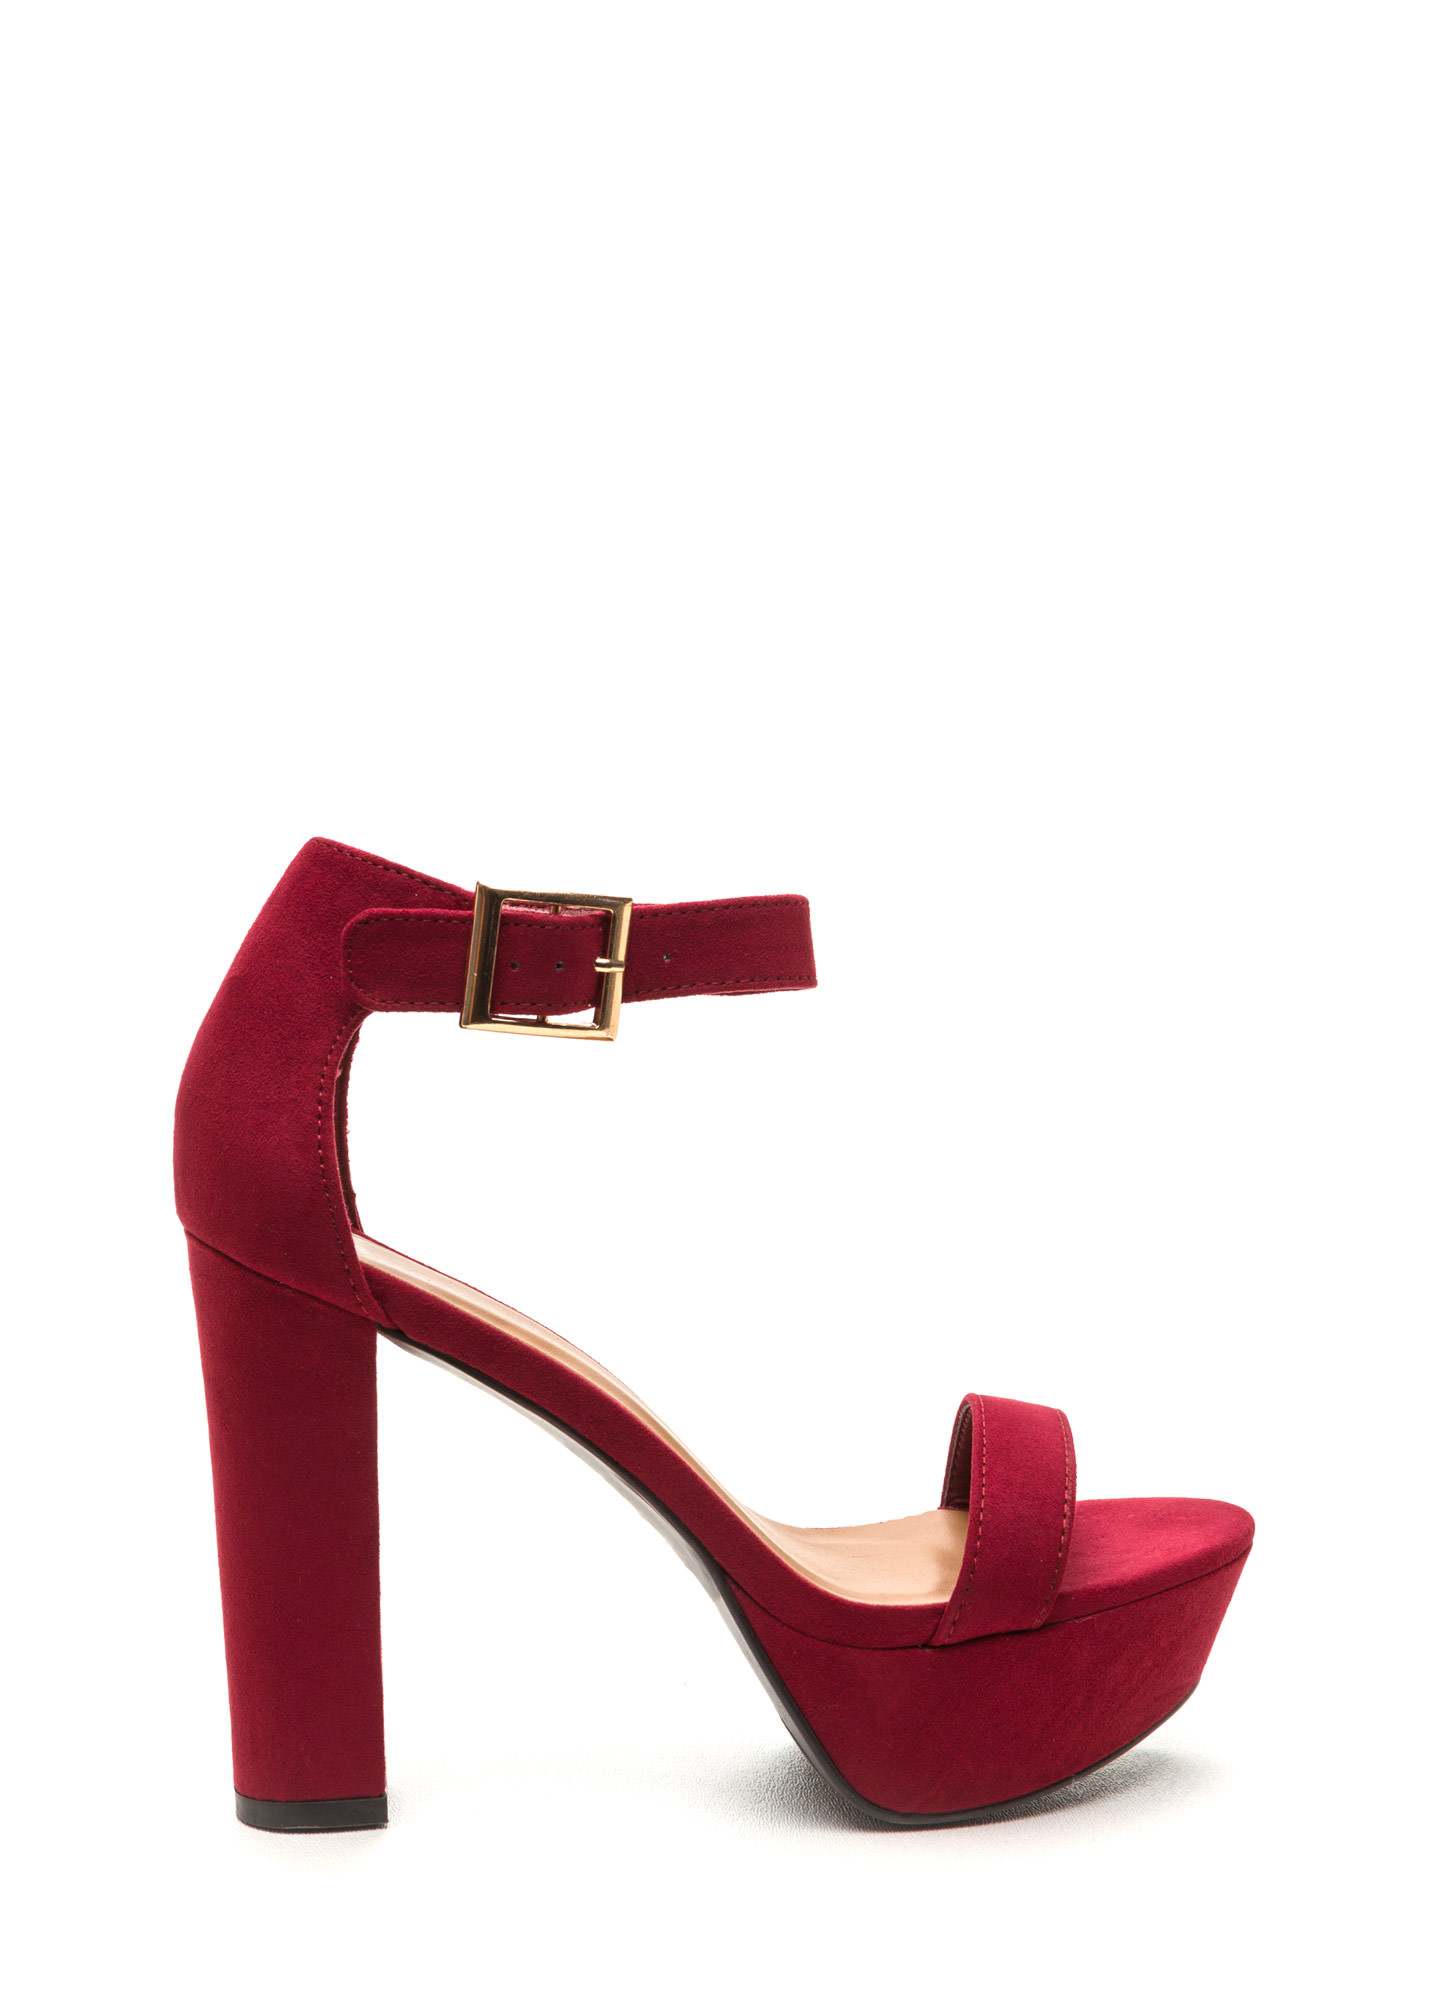 Red Shoes With Heels